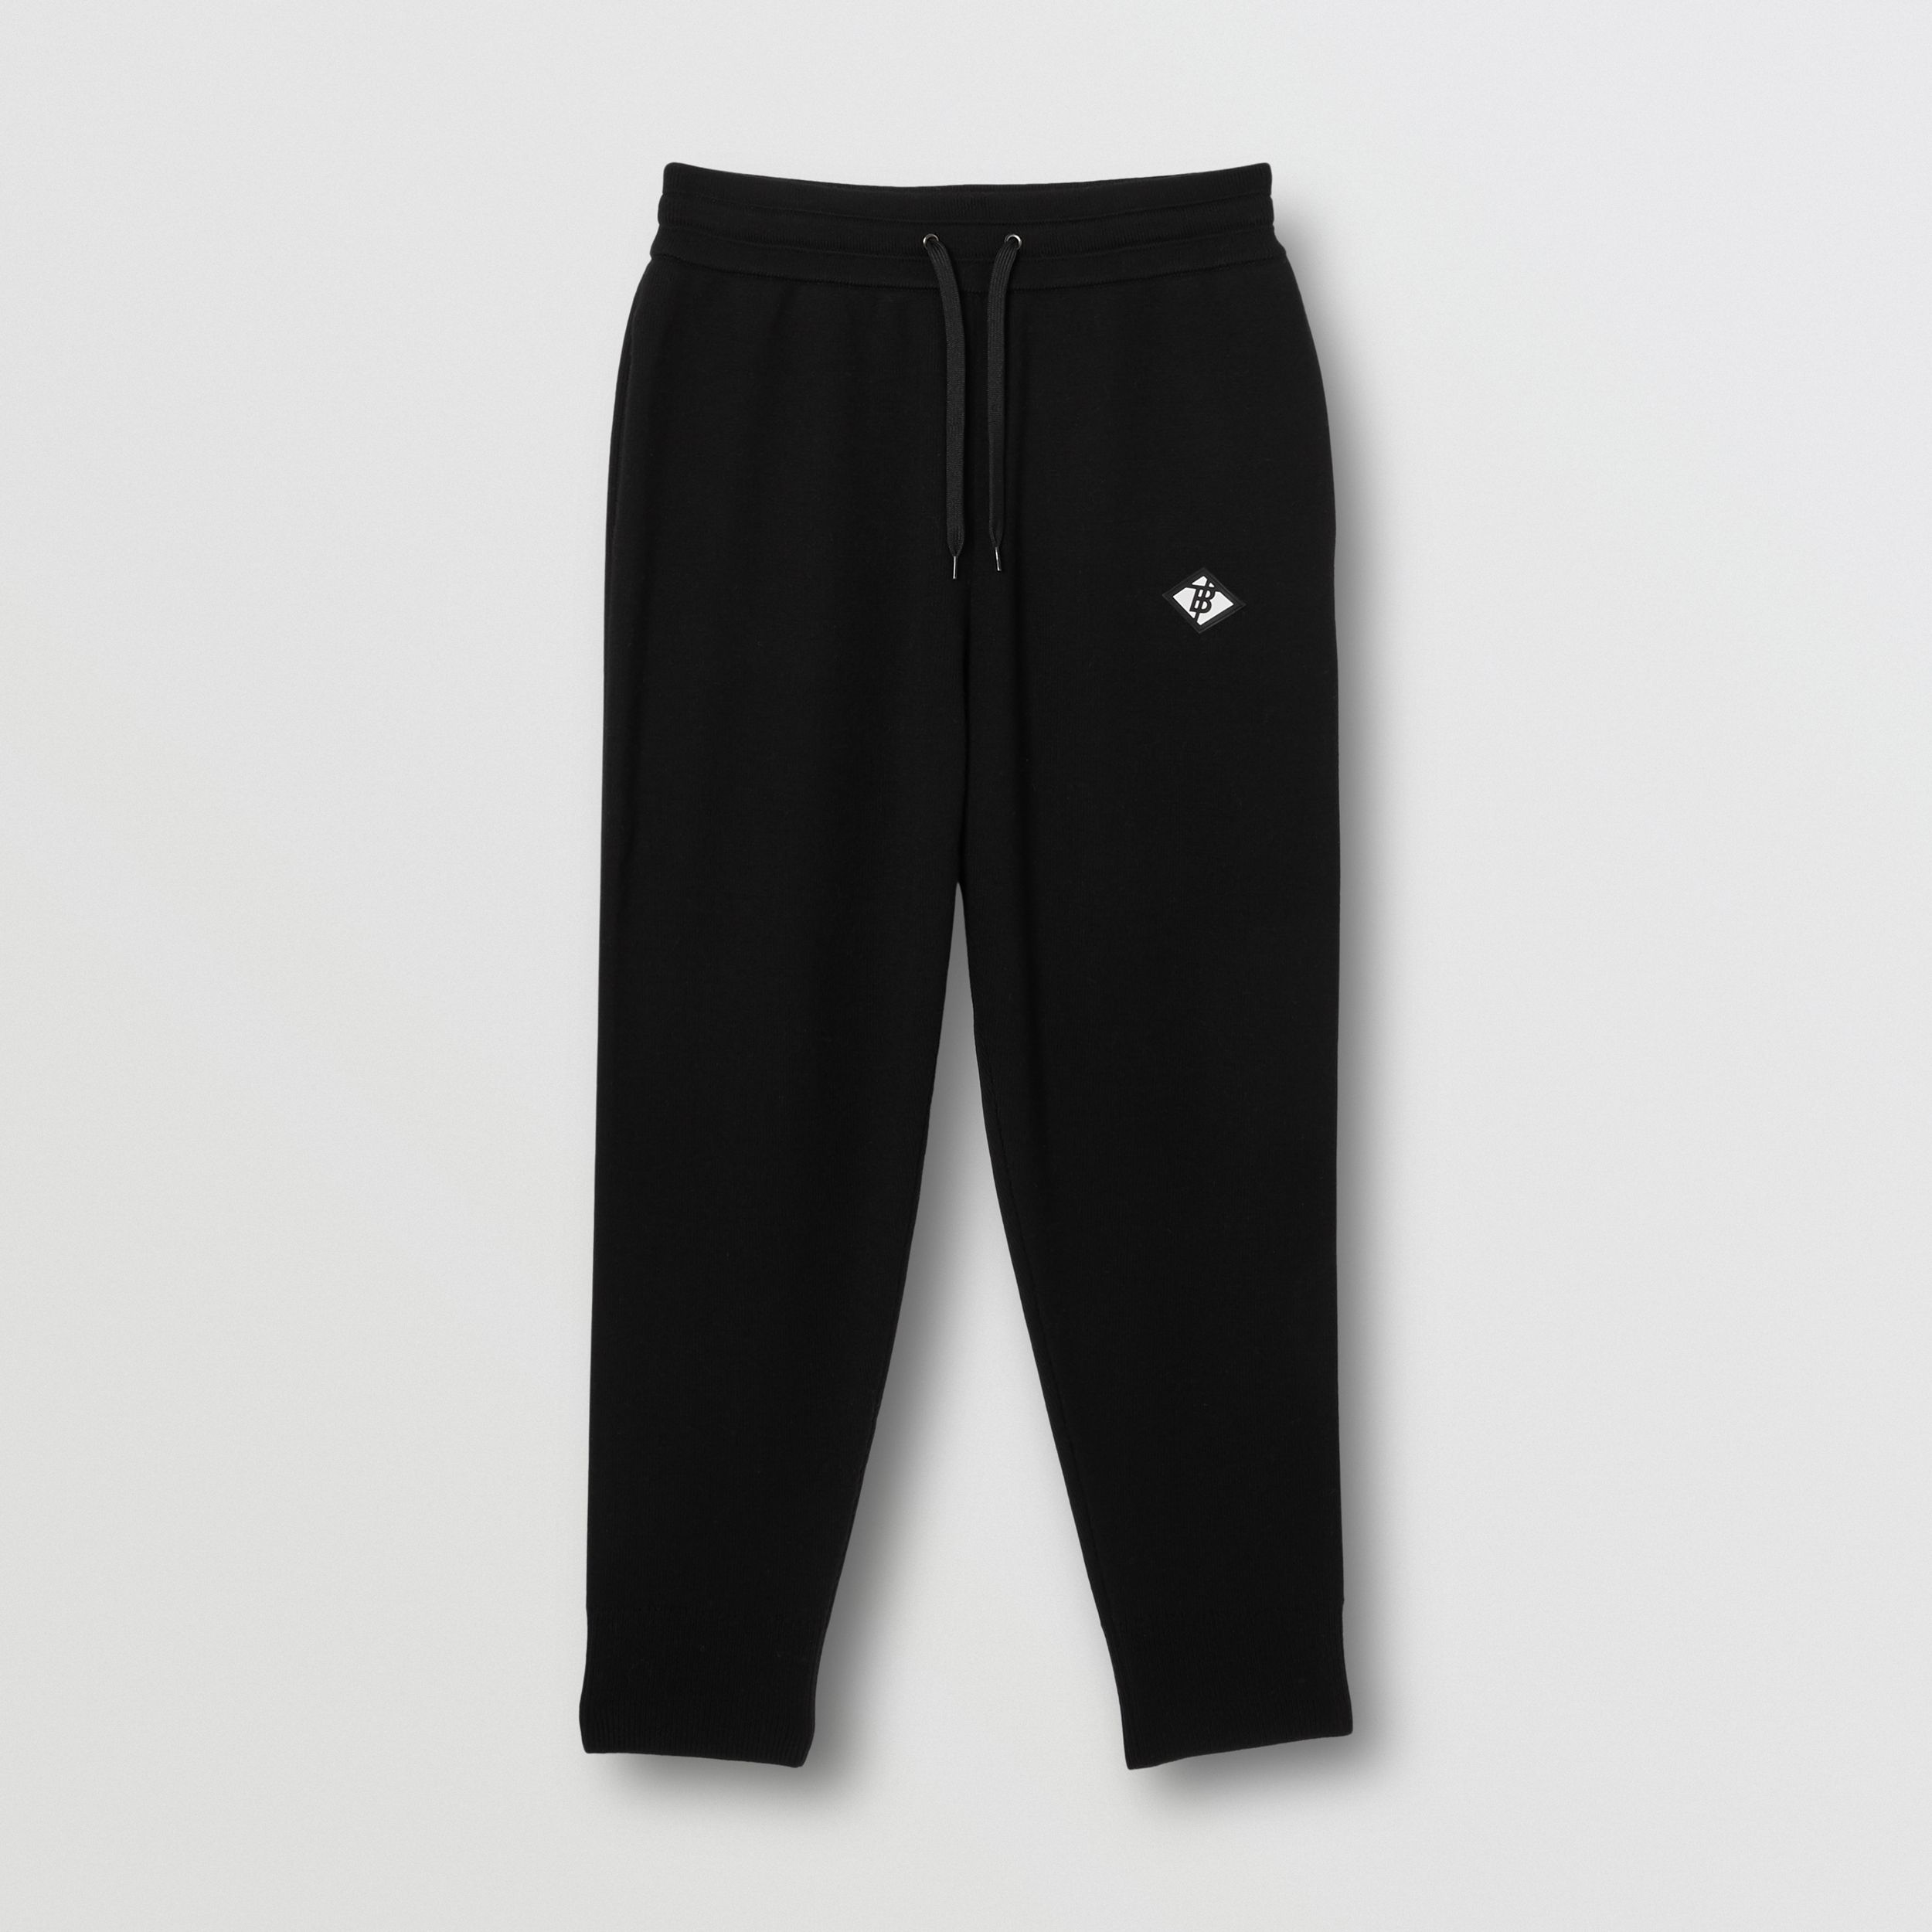 Logo Graphic Merino Wool Trackpants in Black - Men | Burberry - 4